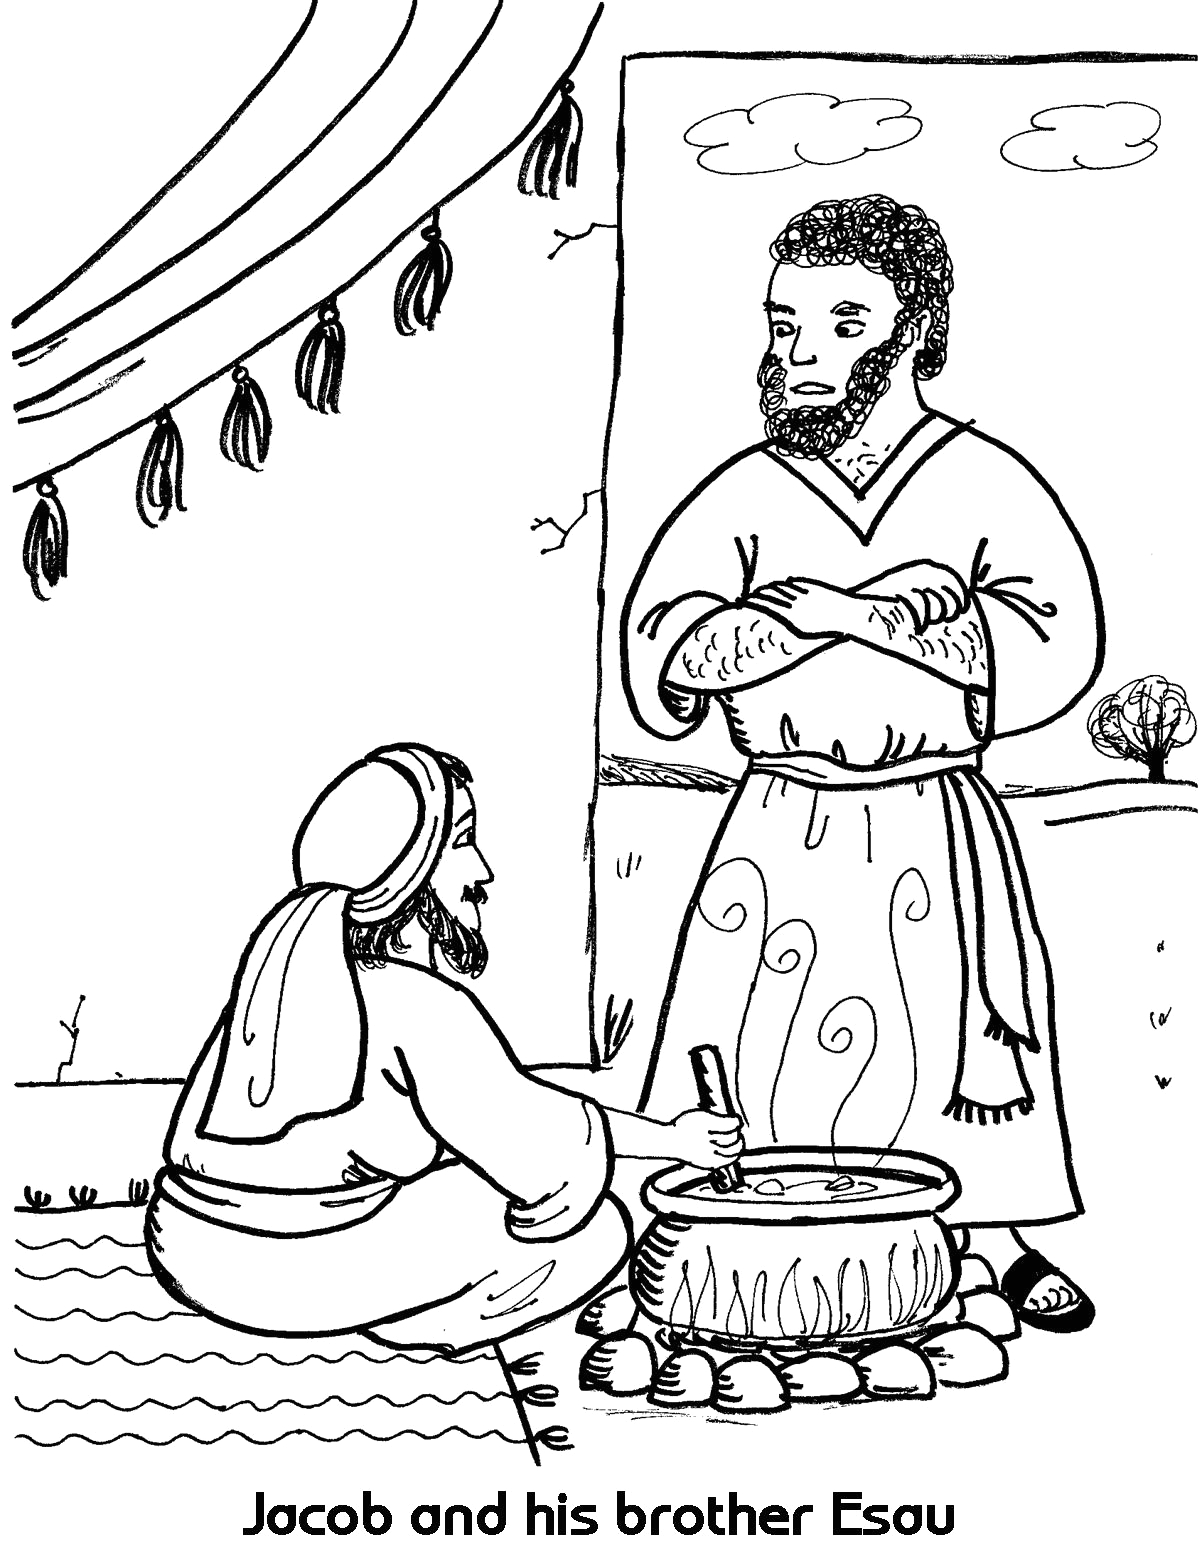 Free Printable Coloring Pages Of Jacob and Esau Free Coloring Pages Jacob and Esau Coloring Home